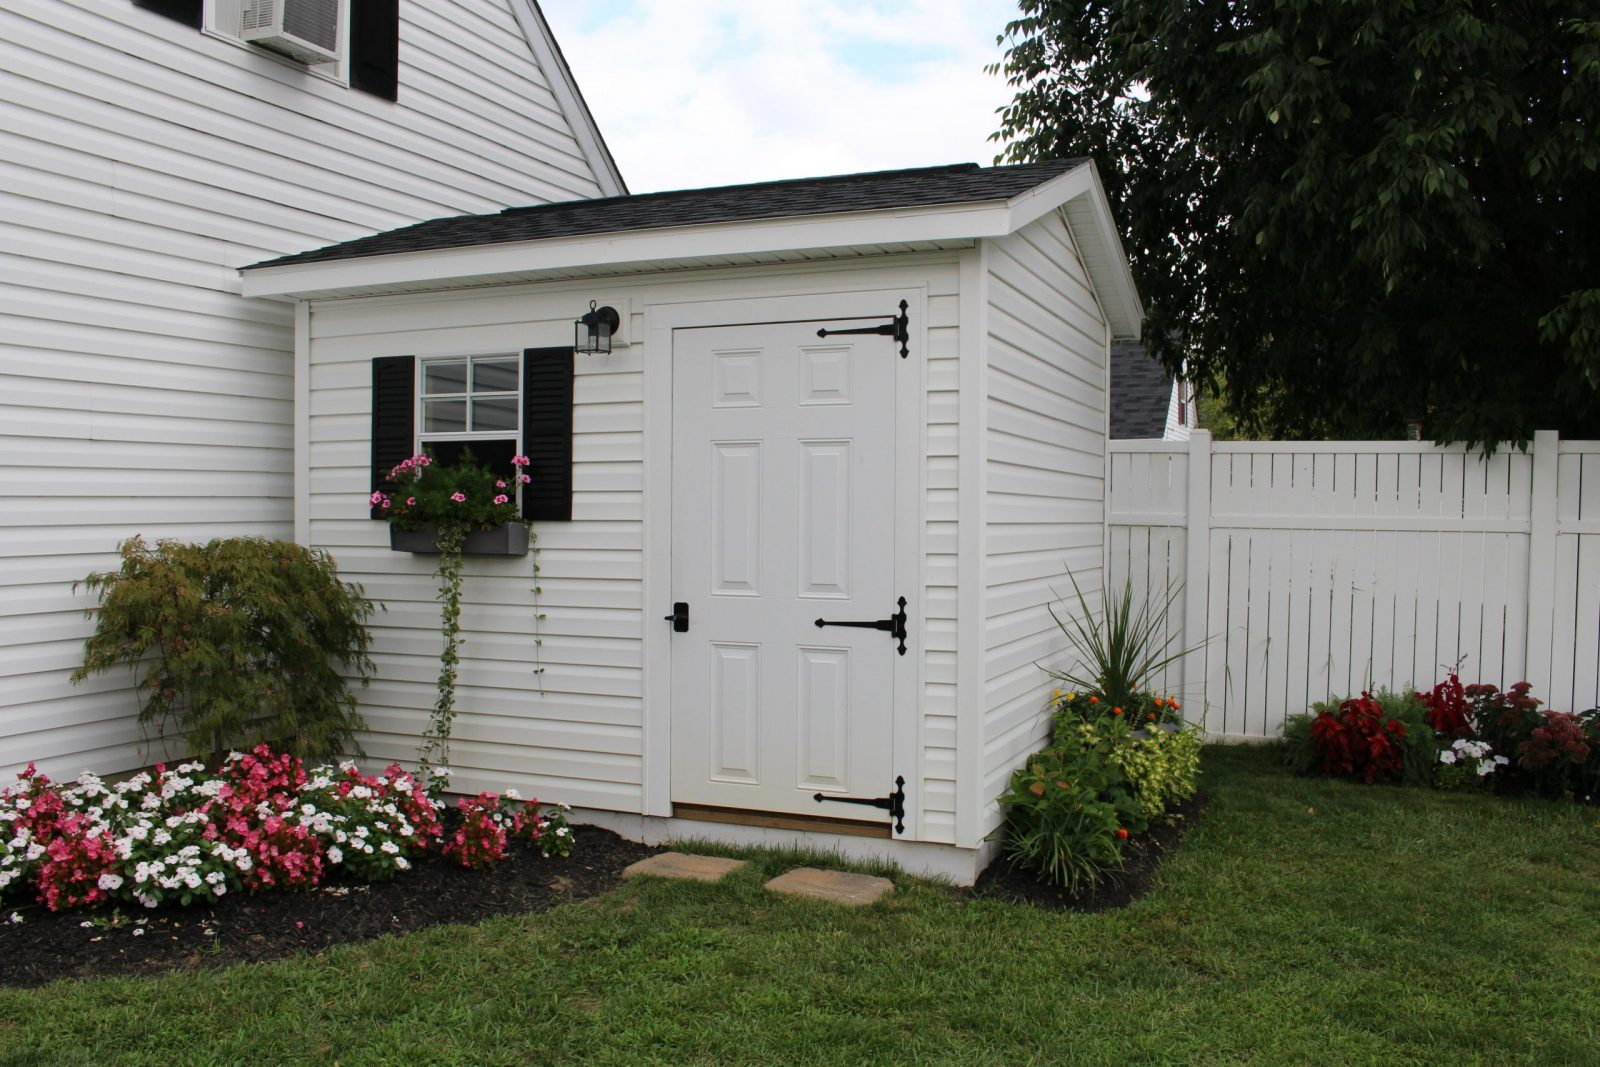 custom garden shed that matches house in ohio